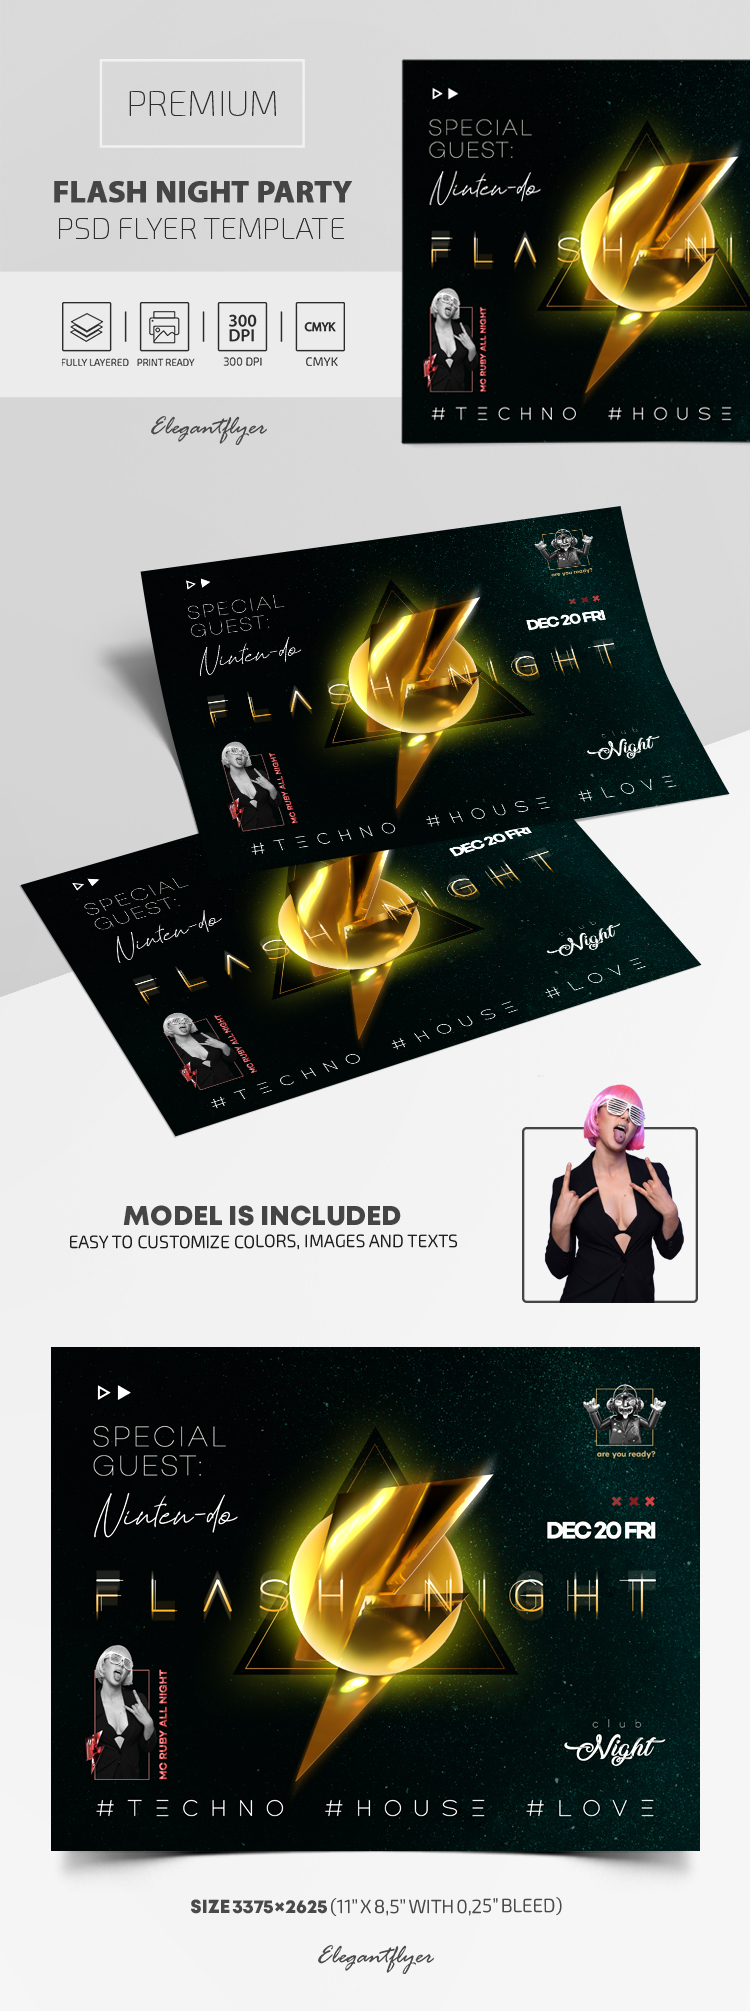 Flash Night Party – Premium PSD Flyer Template